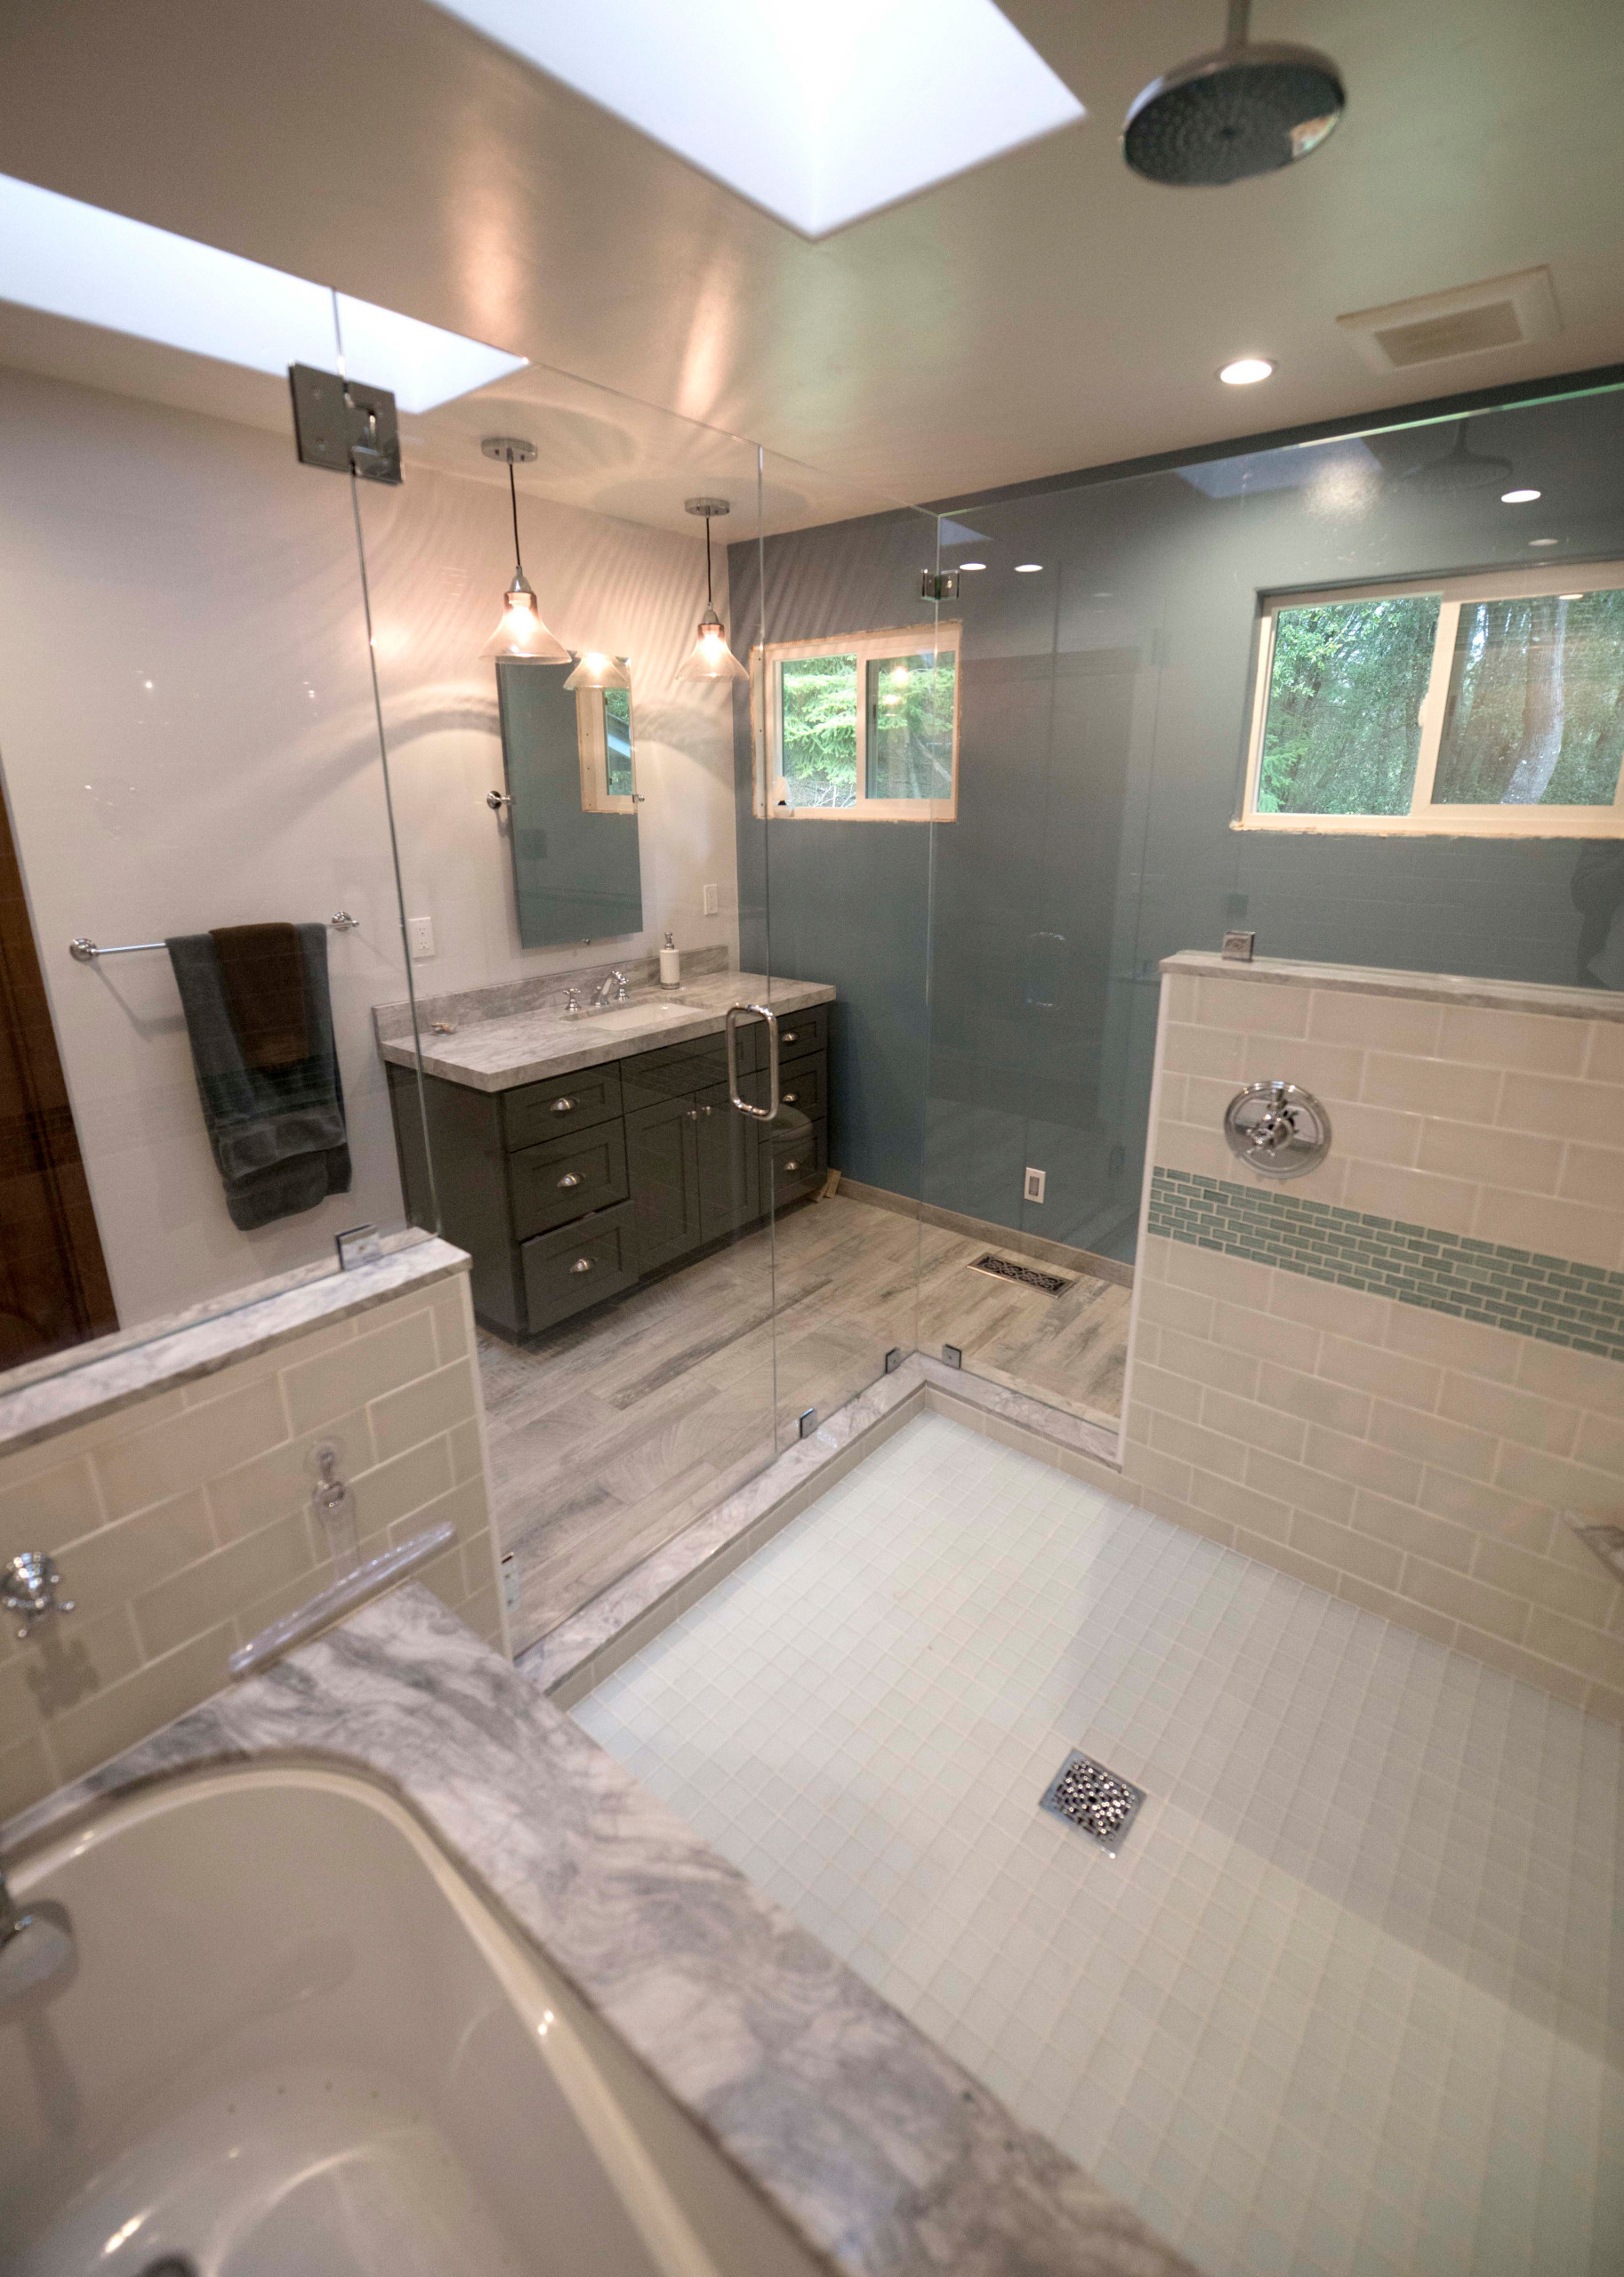 Image of: 75 Beautiful Travertine Floor Bathroom With Blue Cabinets Pictures Ideas November 2020 Houzz